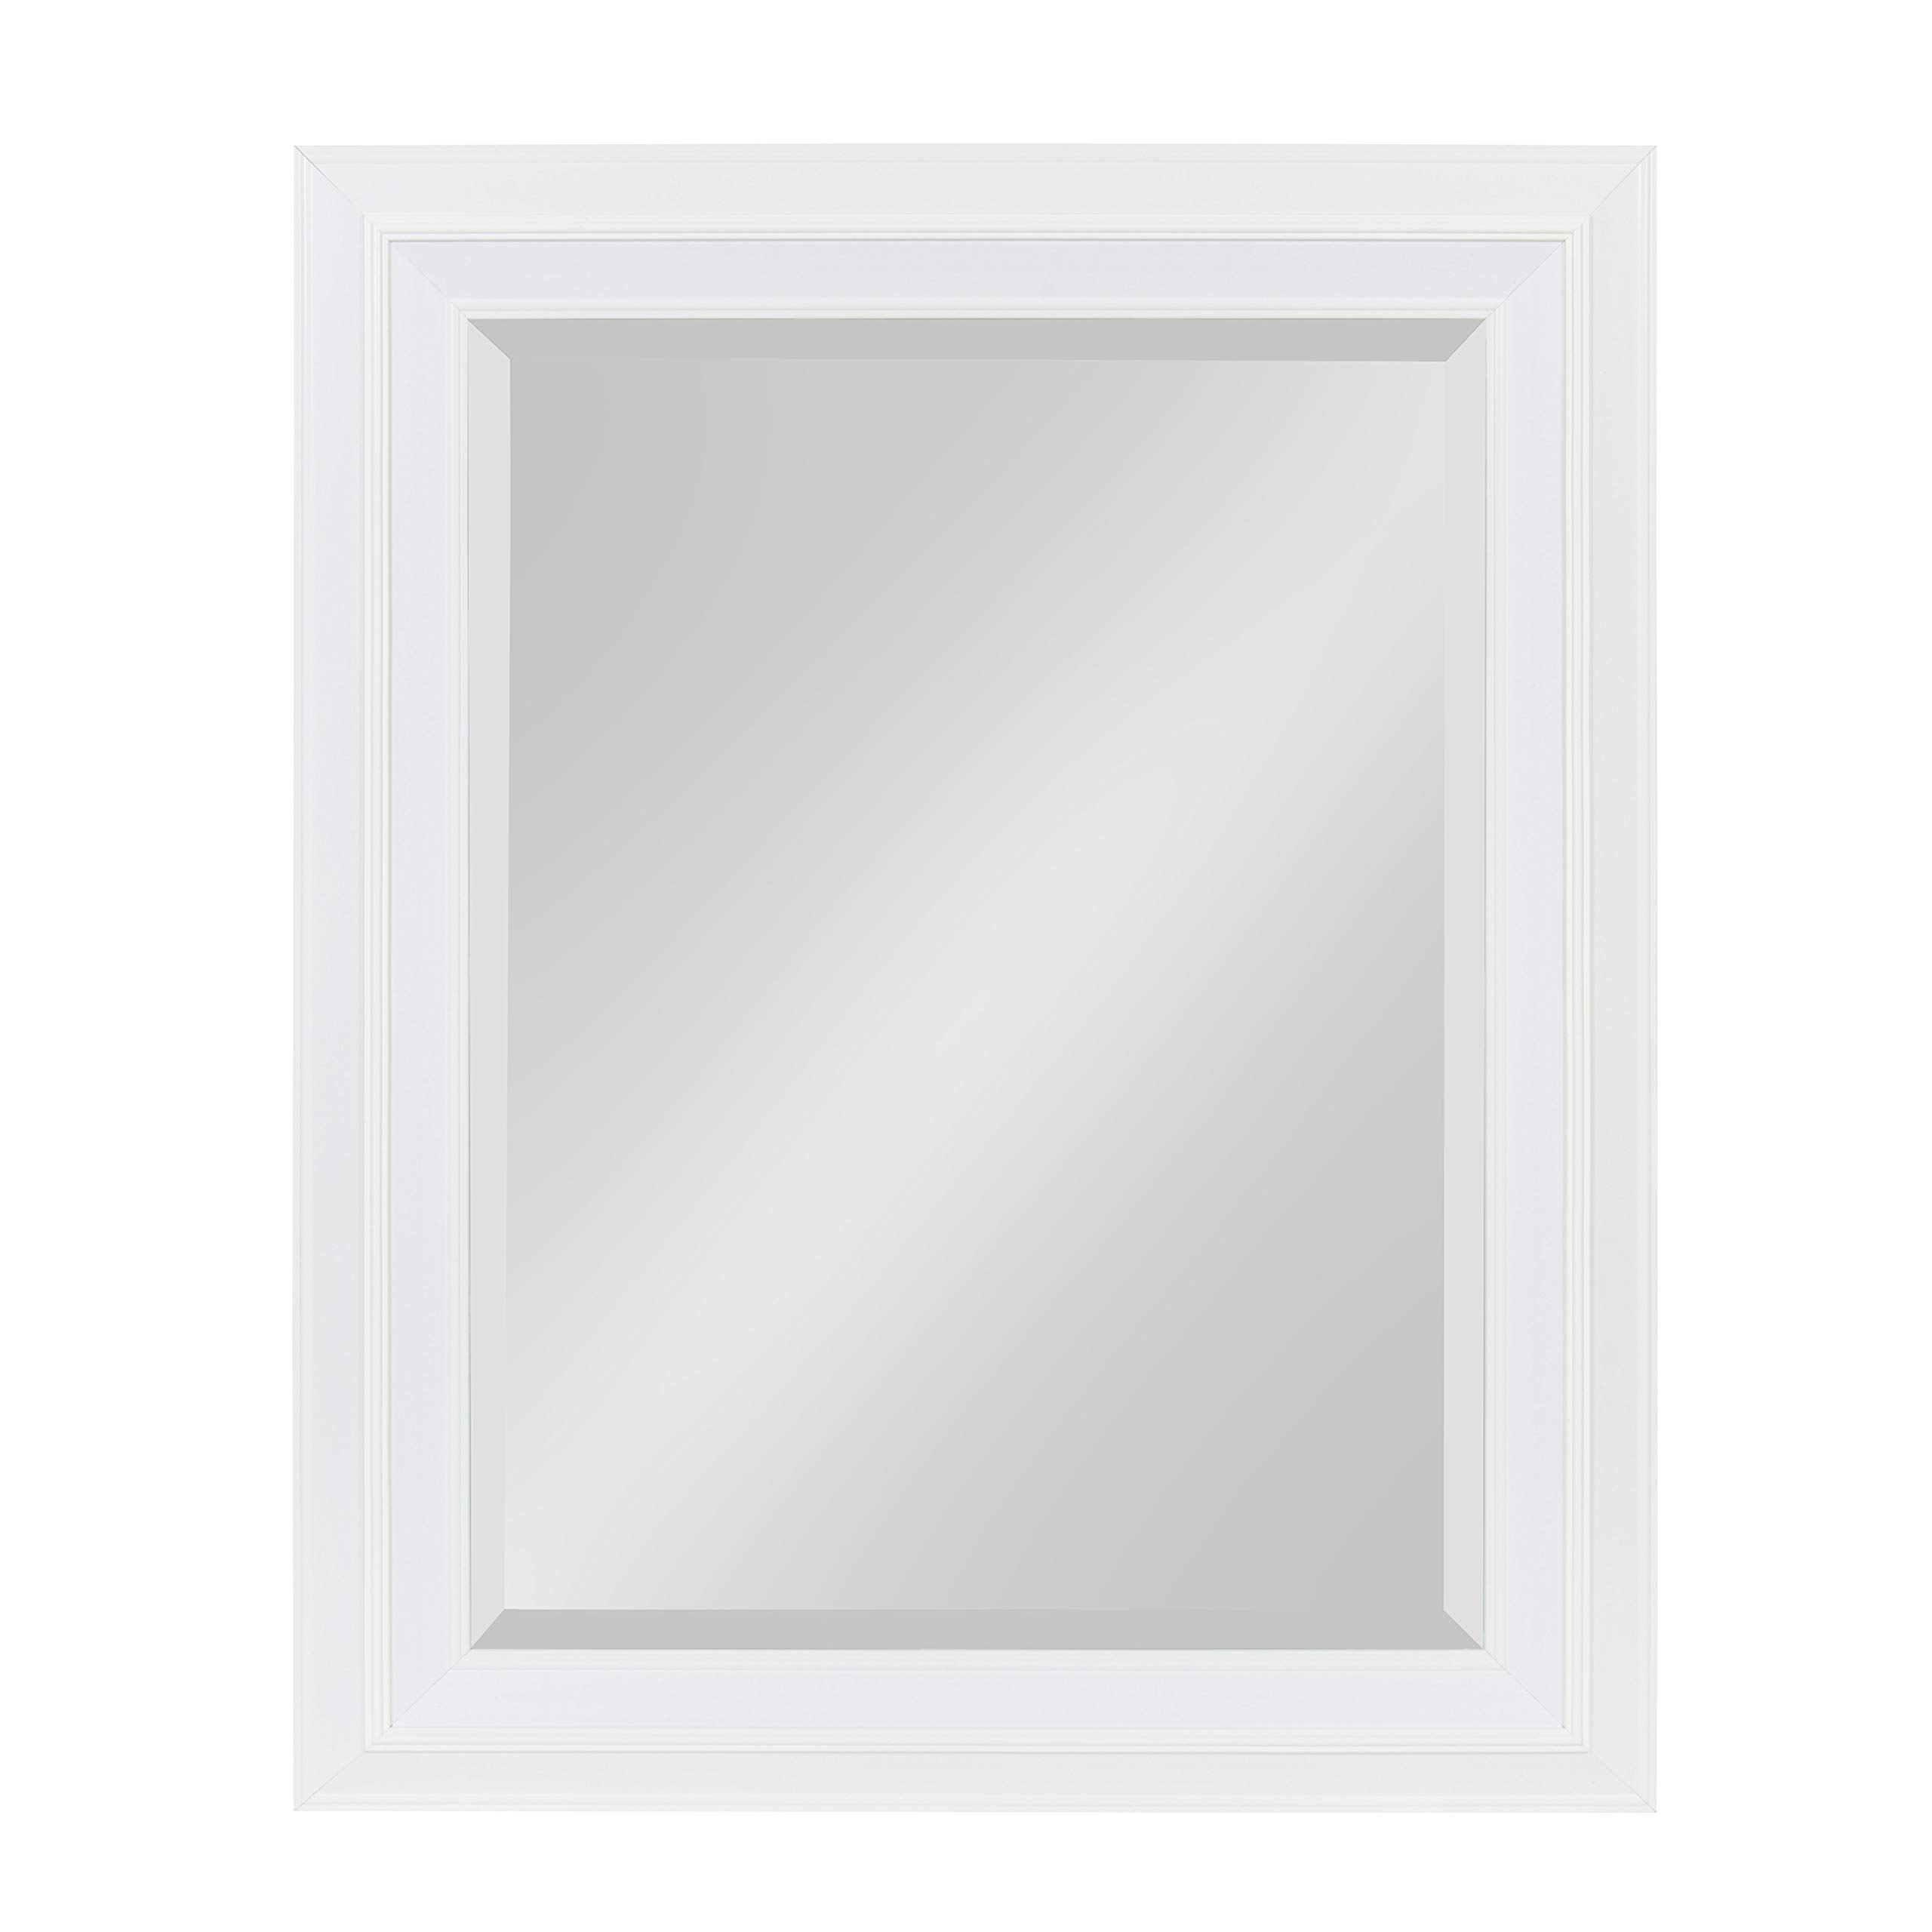 Kate and Laurel Whitley Framed Wall Mirror, 23.5x29.5, White by Kate and Laurel